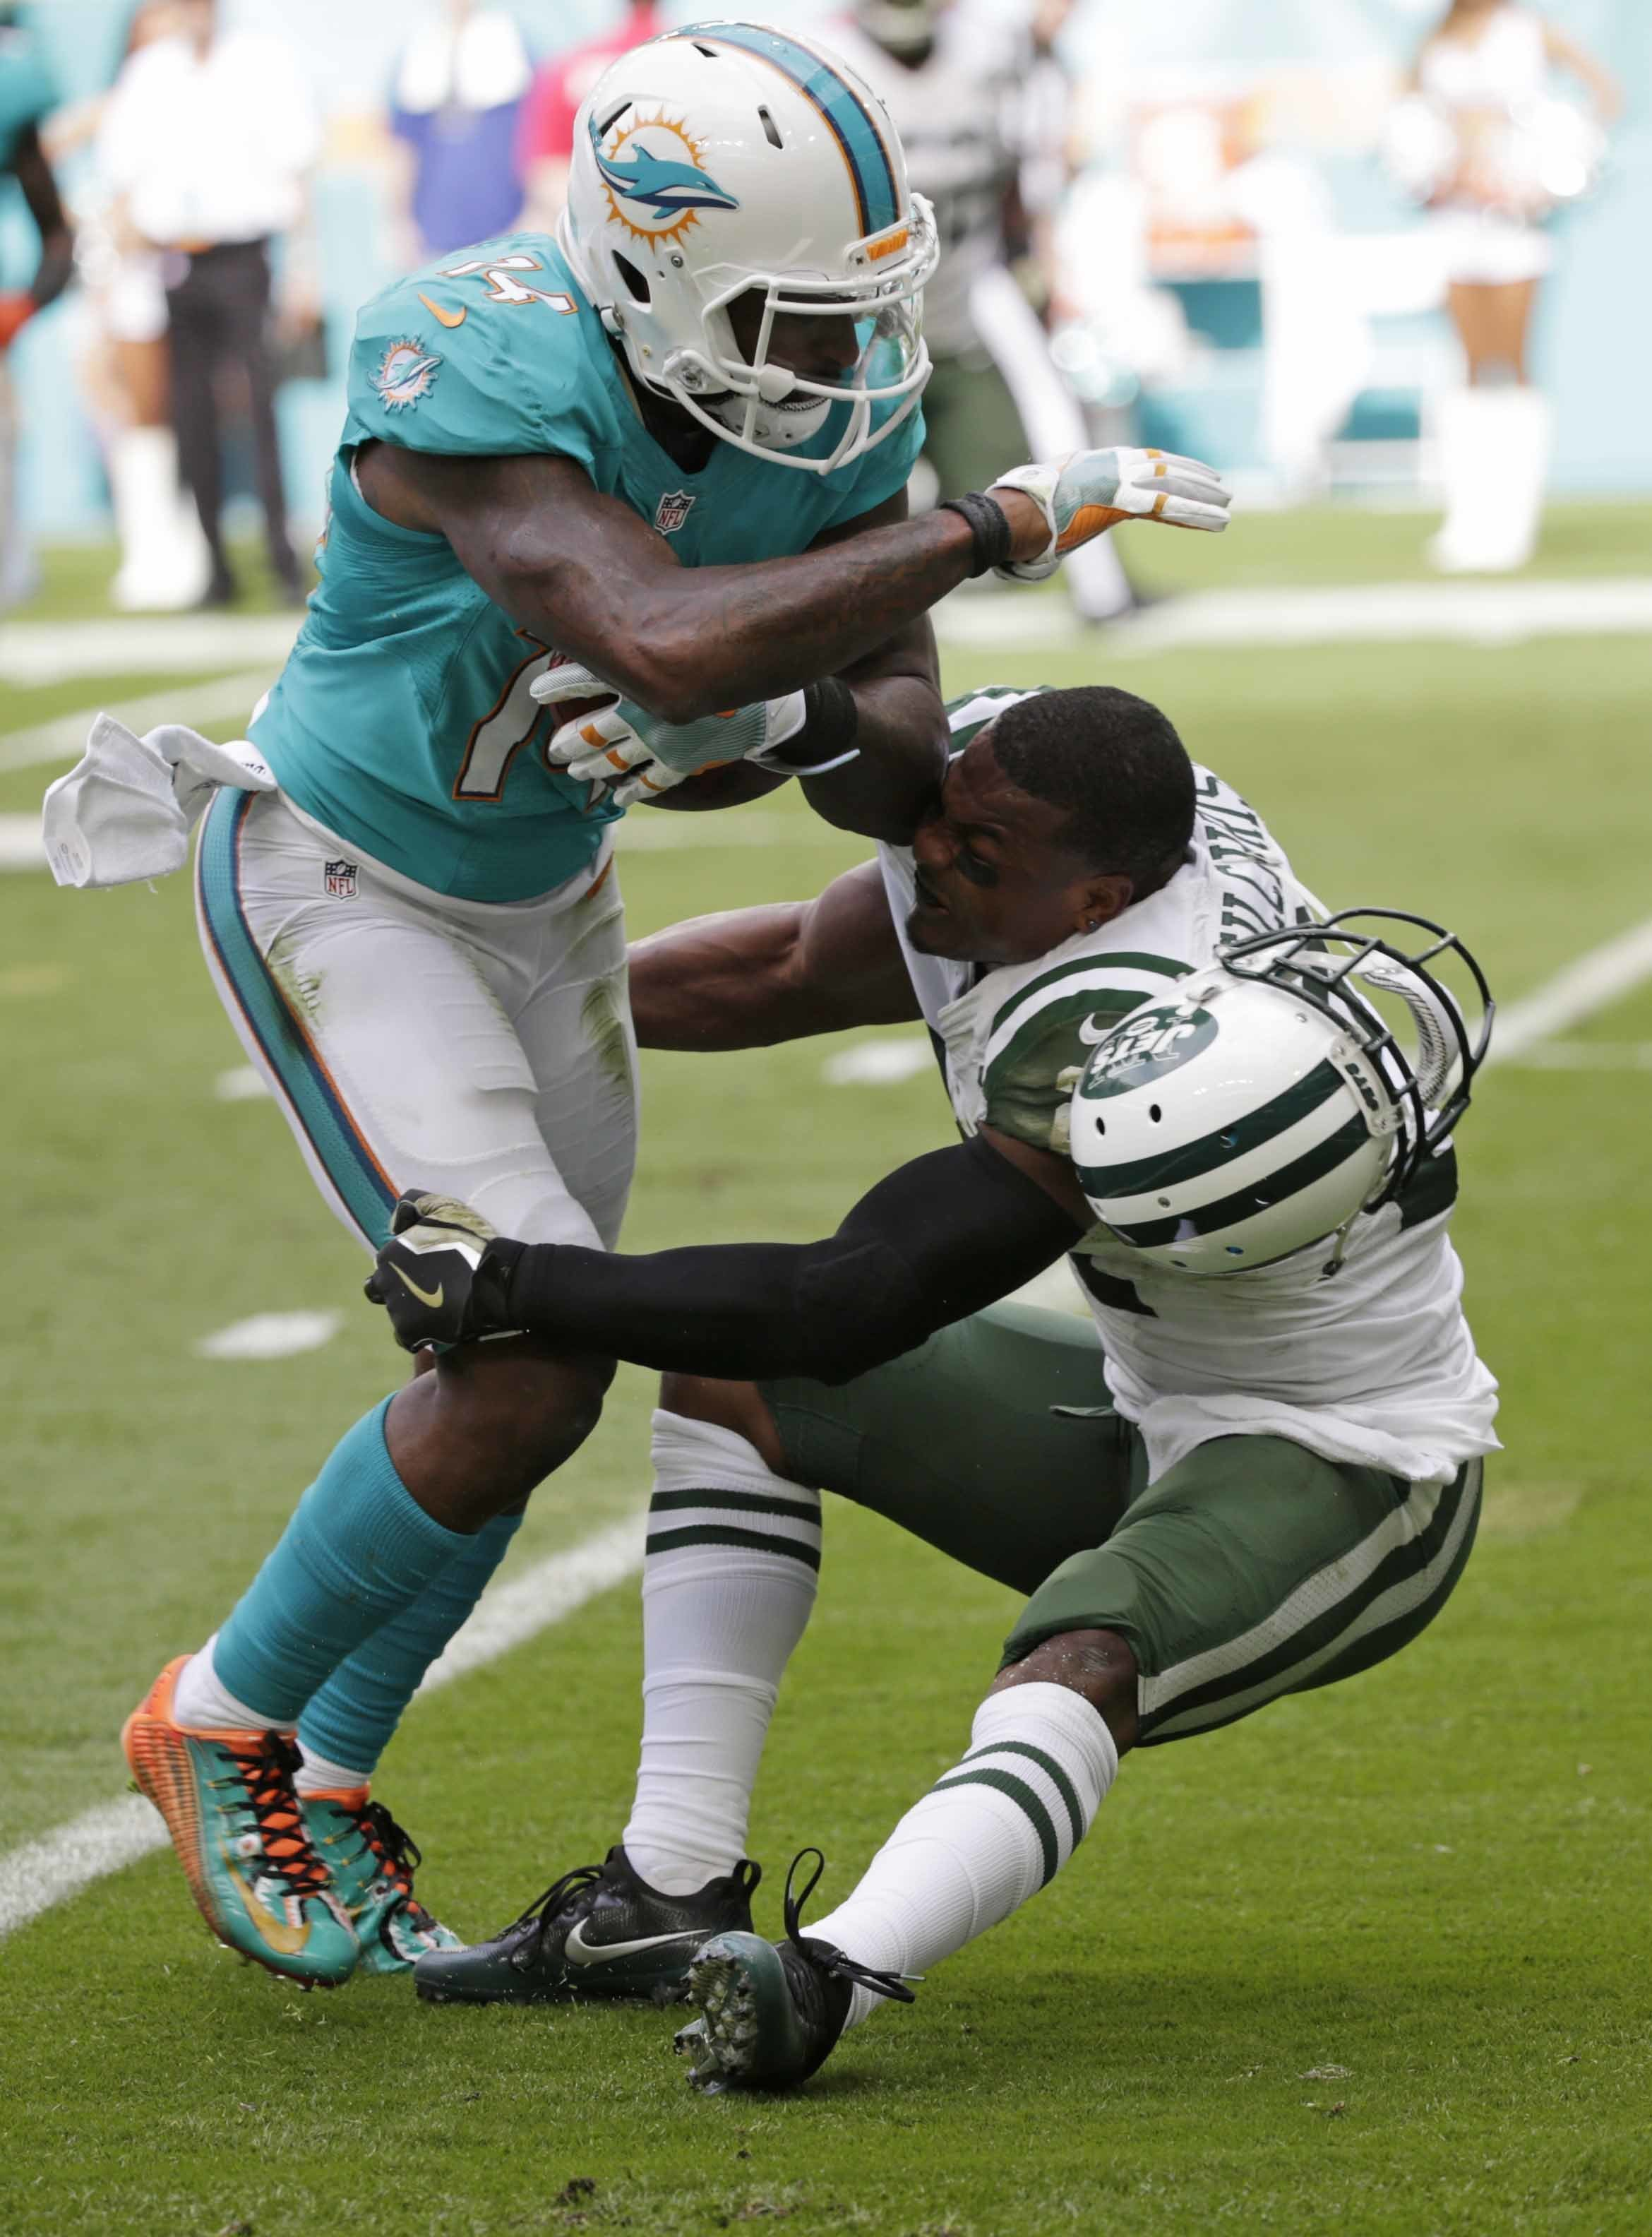 Miami Dolphins wide receiver Jarvis Landry (14) runs the ball as New York Jets free safety Marcus Gilchrist (21), attempts to make the tackle, during the first half of an NFL football game, Sunday, Nov. 6, 2016, in Miami Gardens, Fla. (AP Photo/Wilfredo L